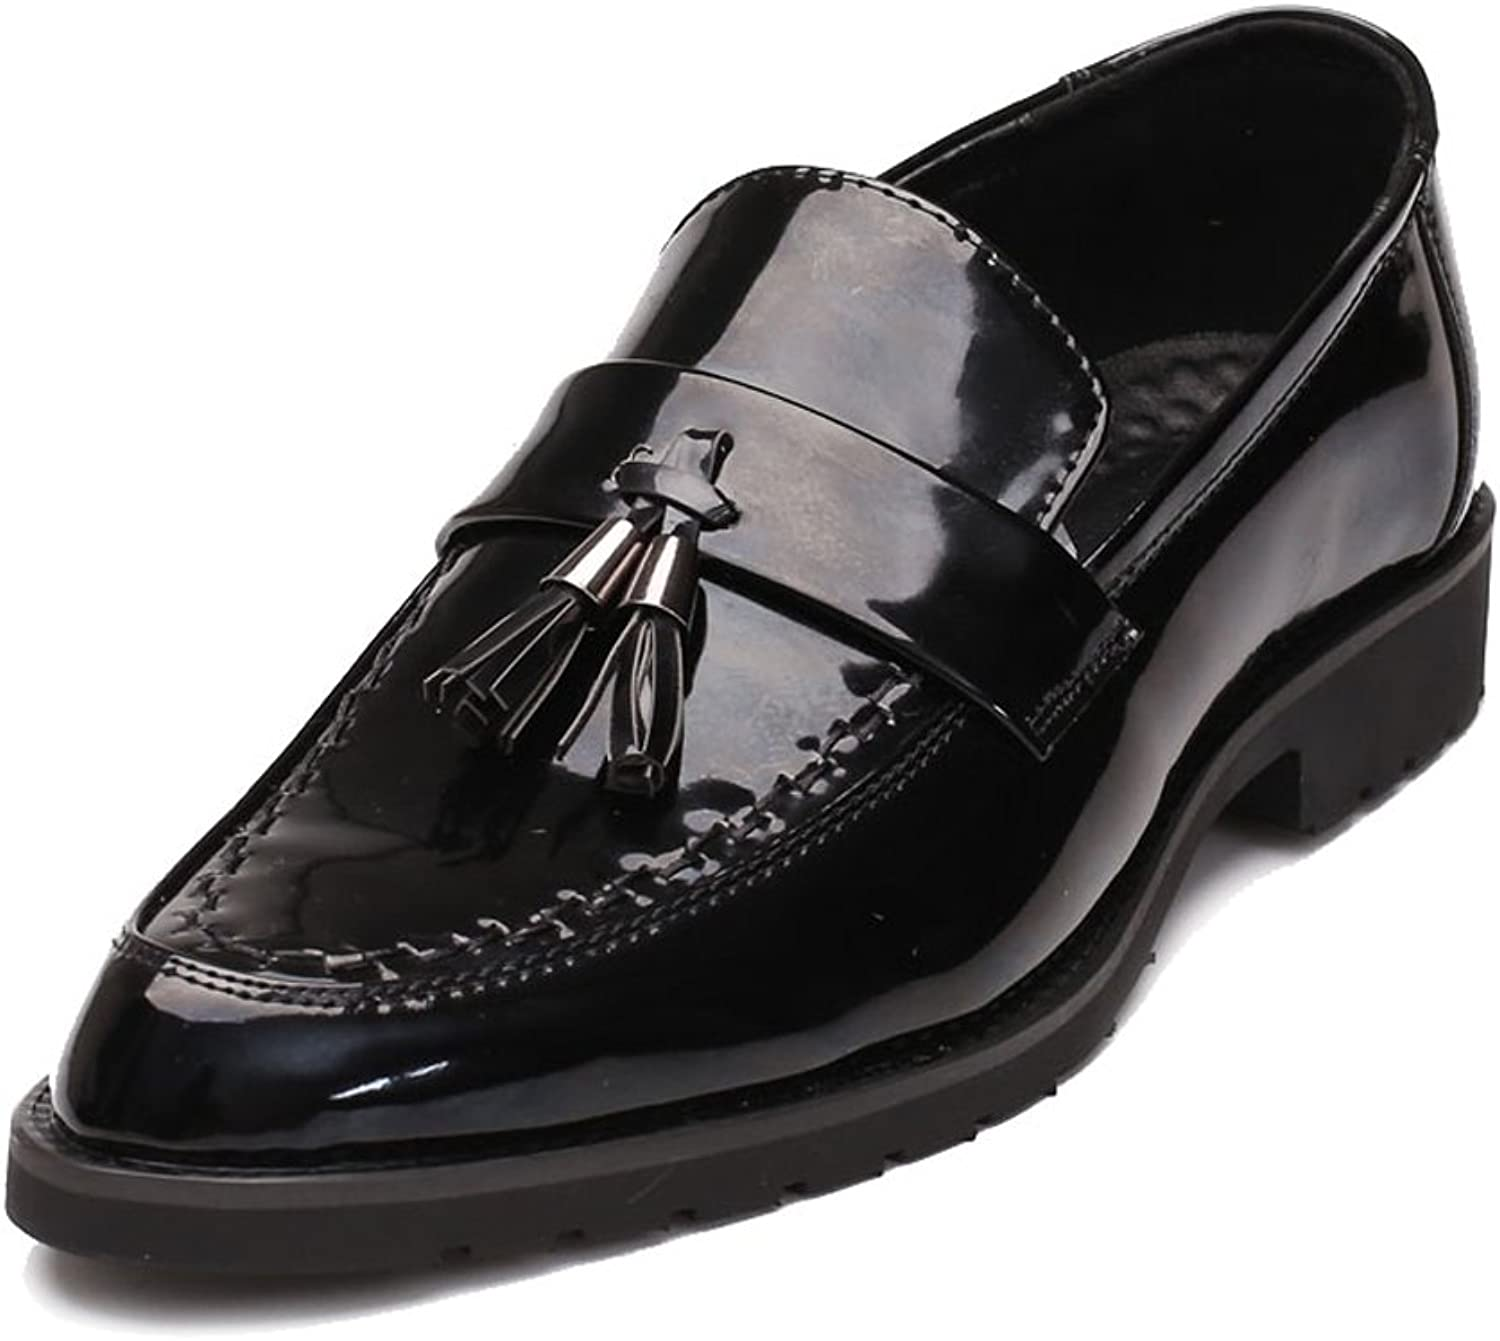 ZLQ Men's Business Smooth PU Leather shoes Classic Slip-on Loafers Tassel Pendant Decoration Outsole Oxfords Formal shoes